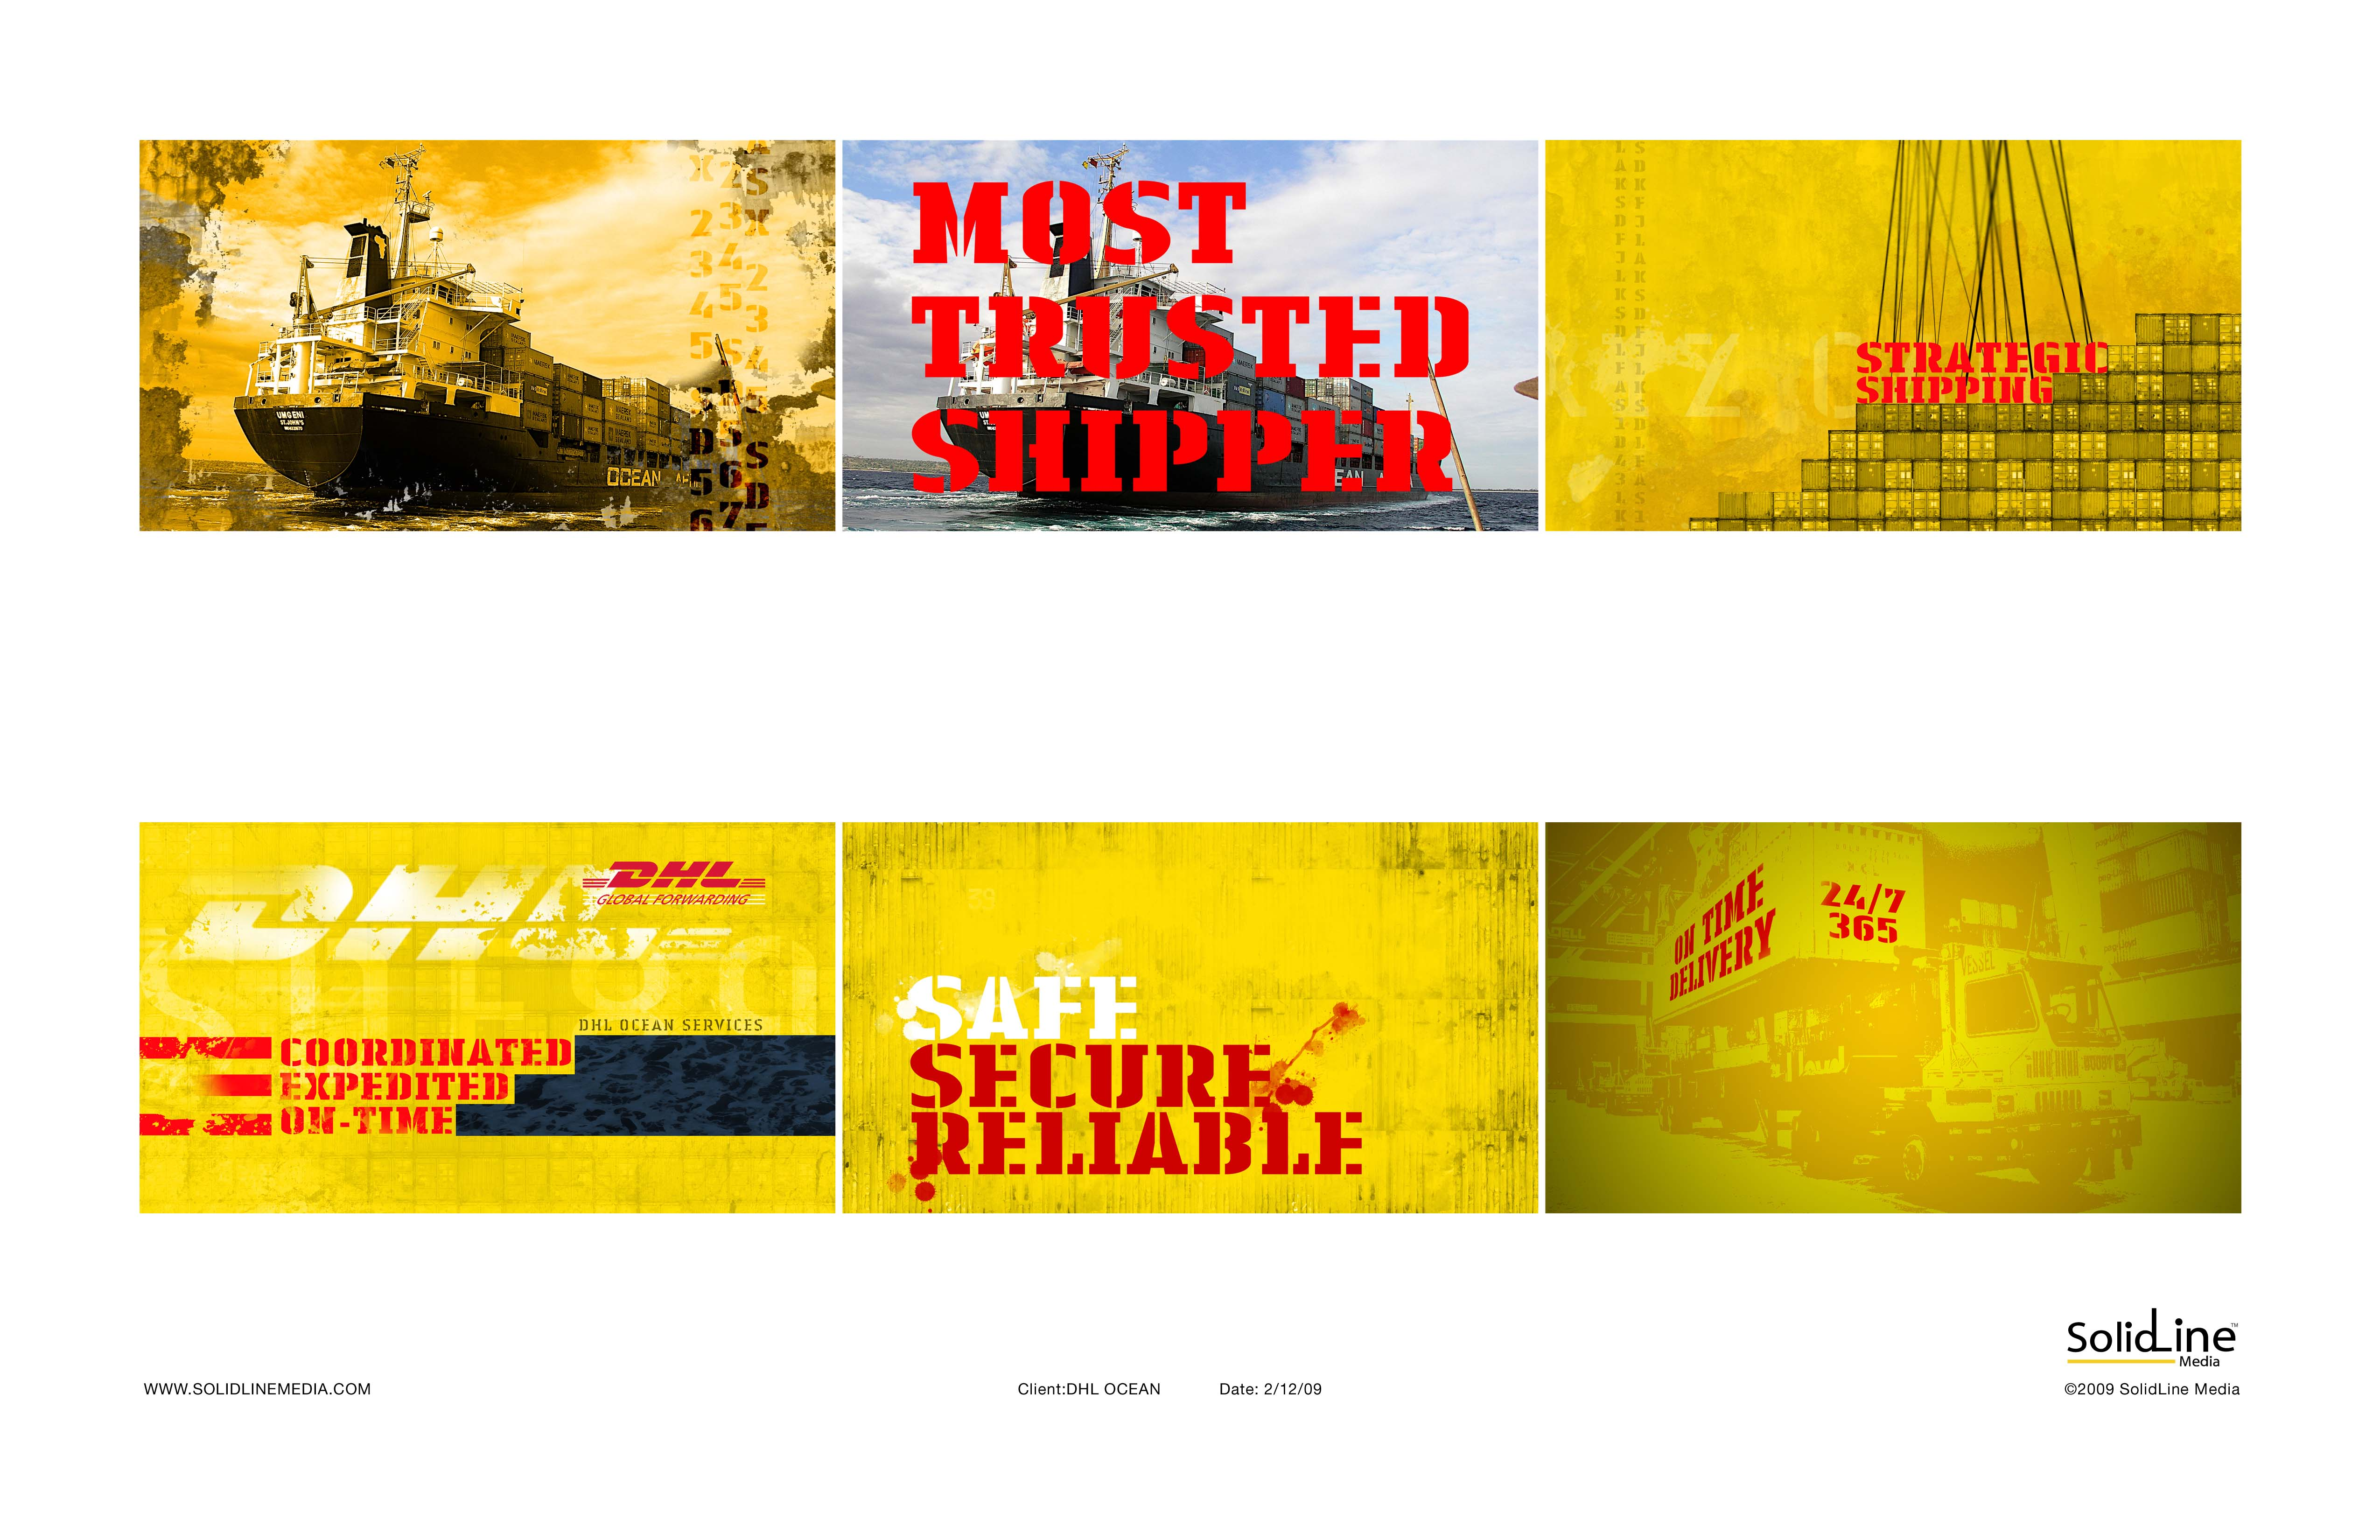 This is the initial style sheet for the DHL Ocean Freight Services Promo